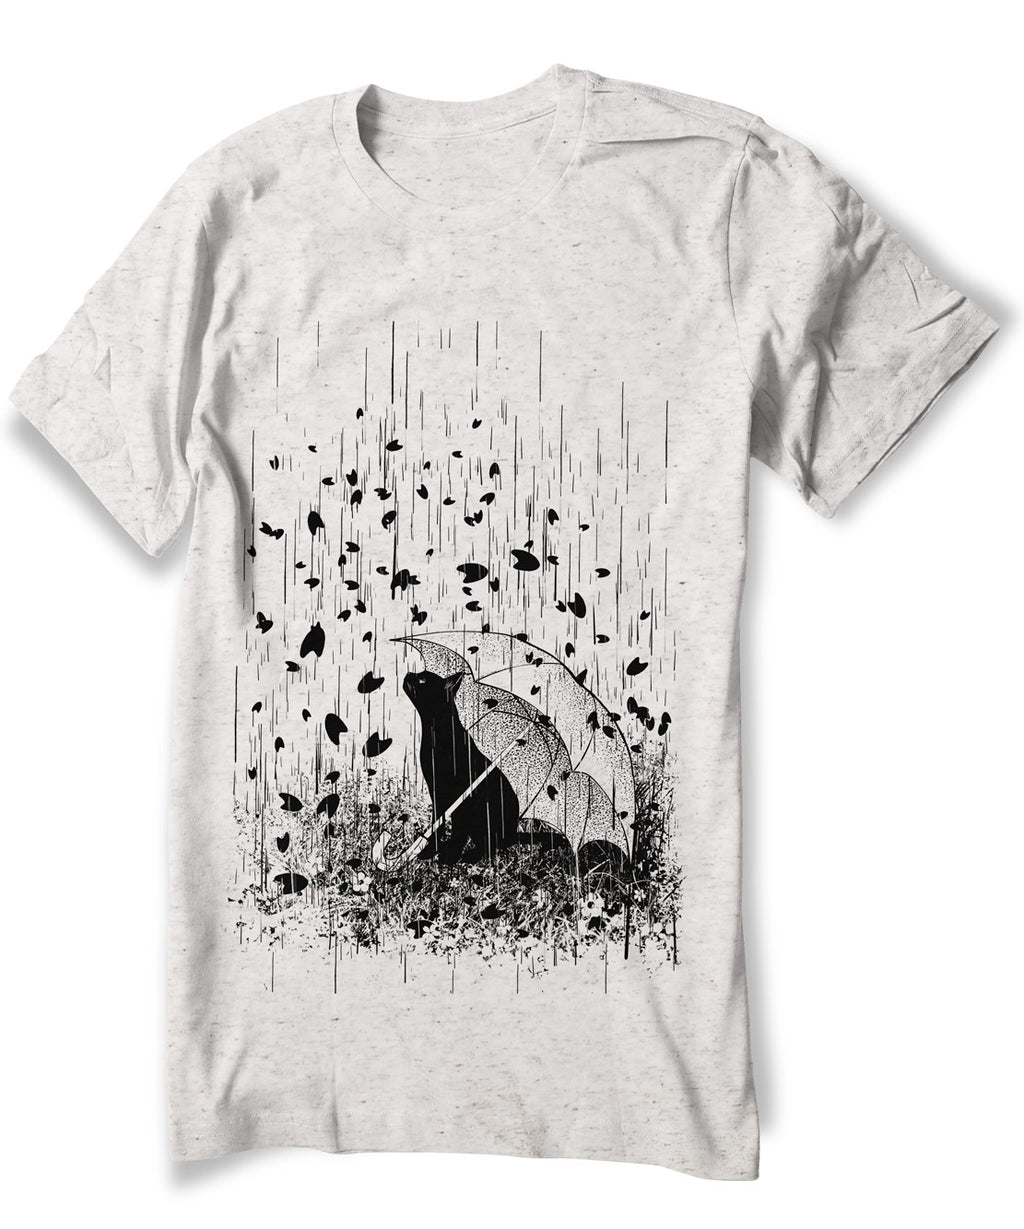 Rainy Day Cat Shirt